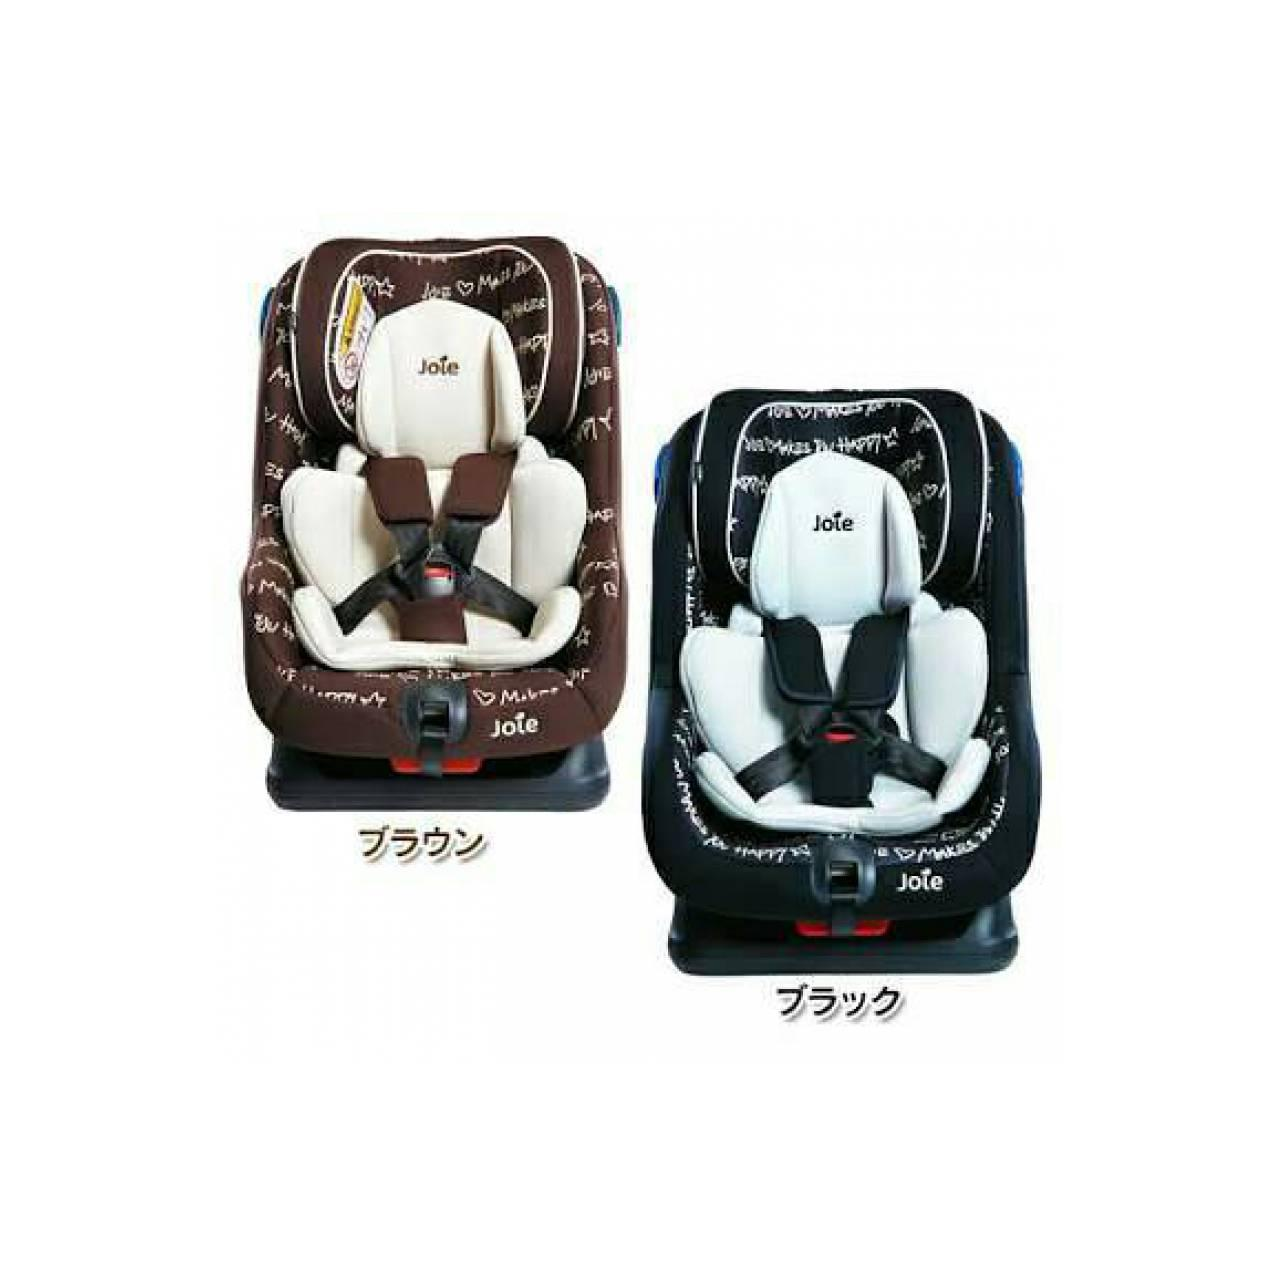 Carseat Joie Xteady ( Carseat Joie Steady Pasaran Asia Timur )